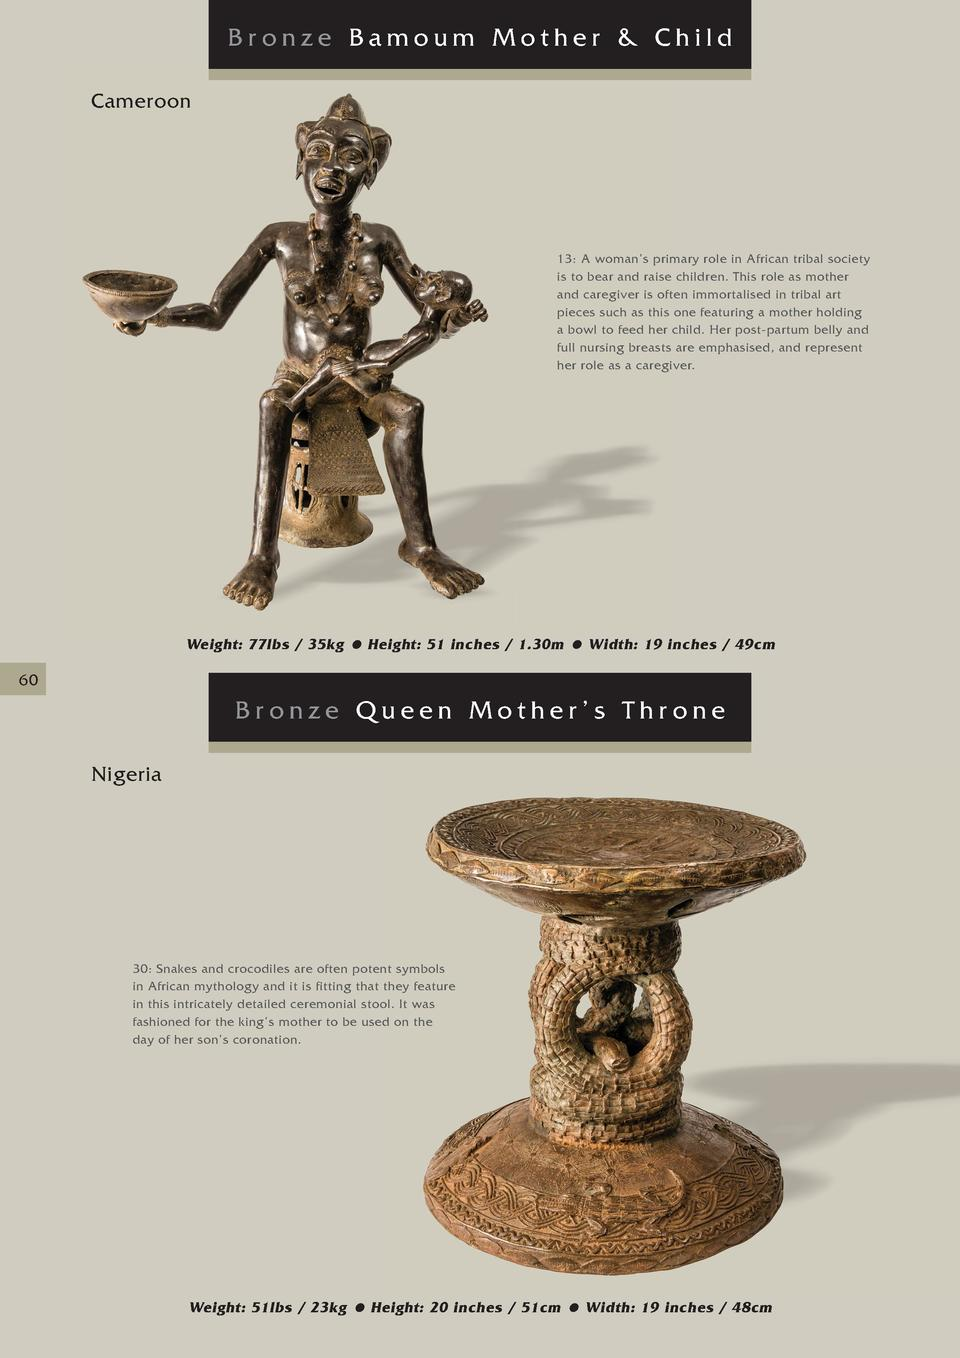 Bronze Bamoum Mother   Child Cameroon  13  A woman   s primary role in African tribal society is to bear and raise childre...